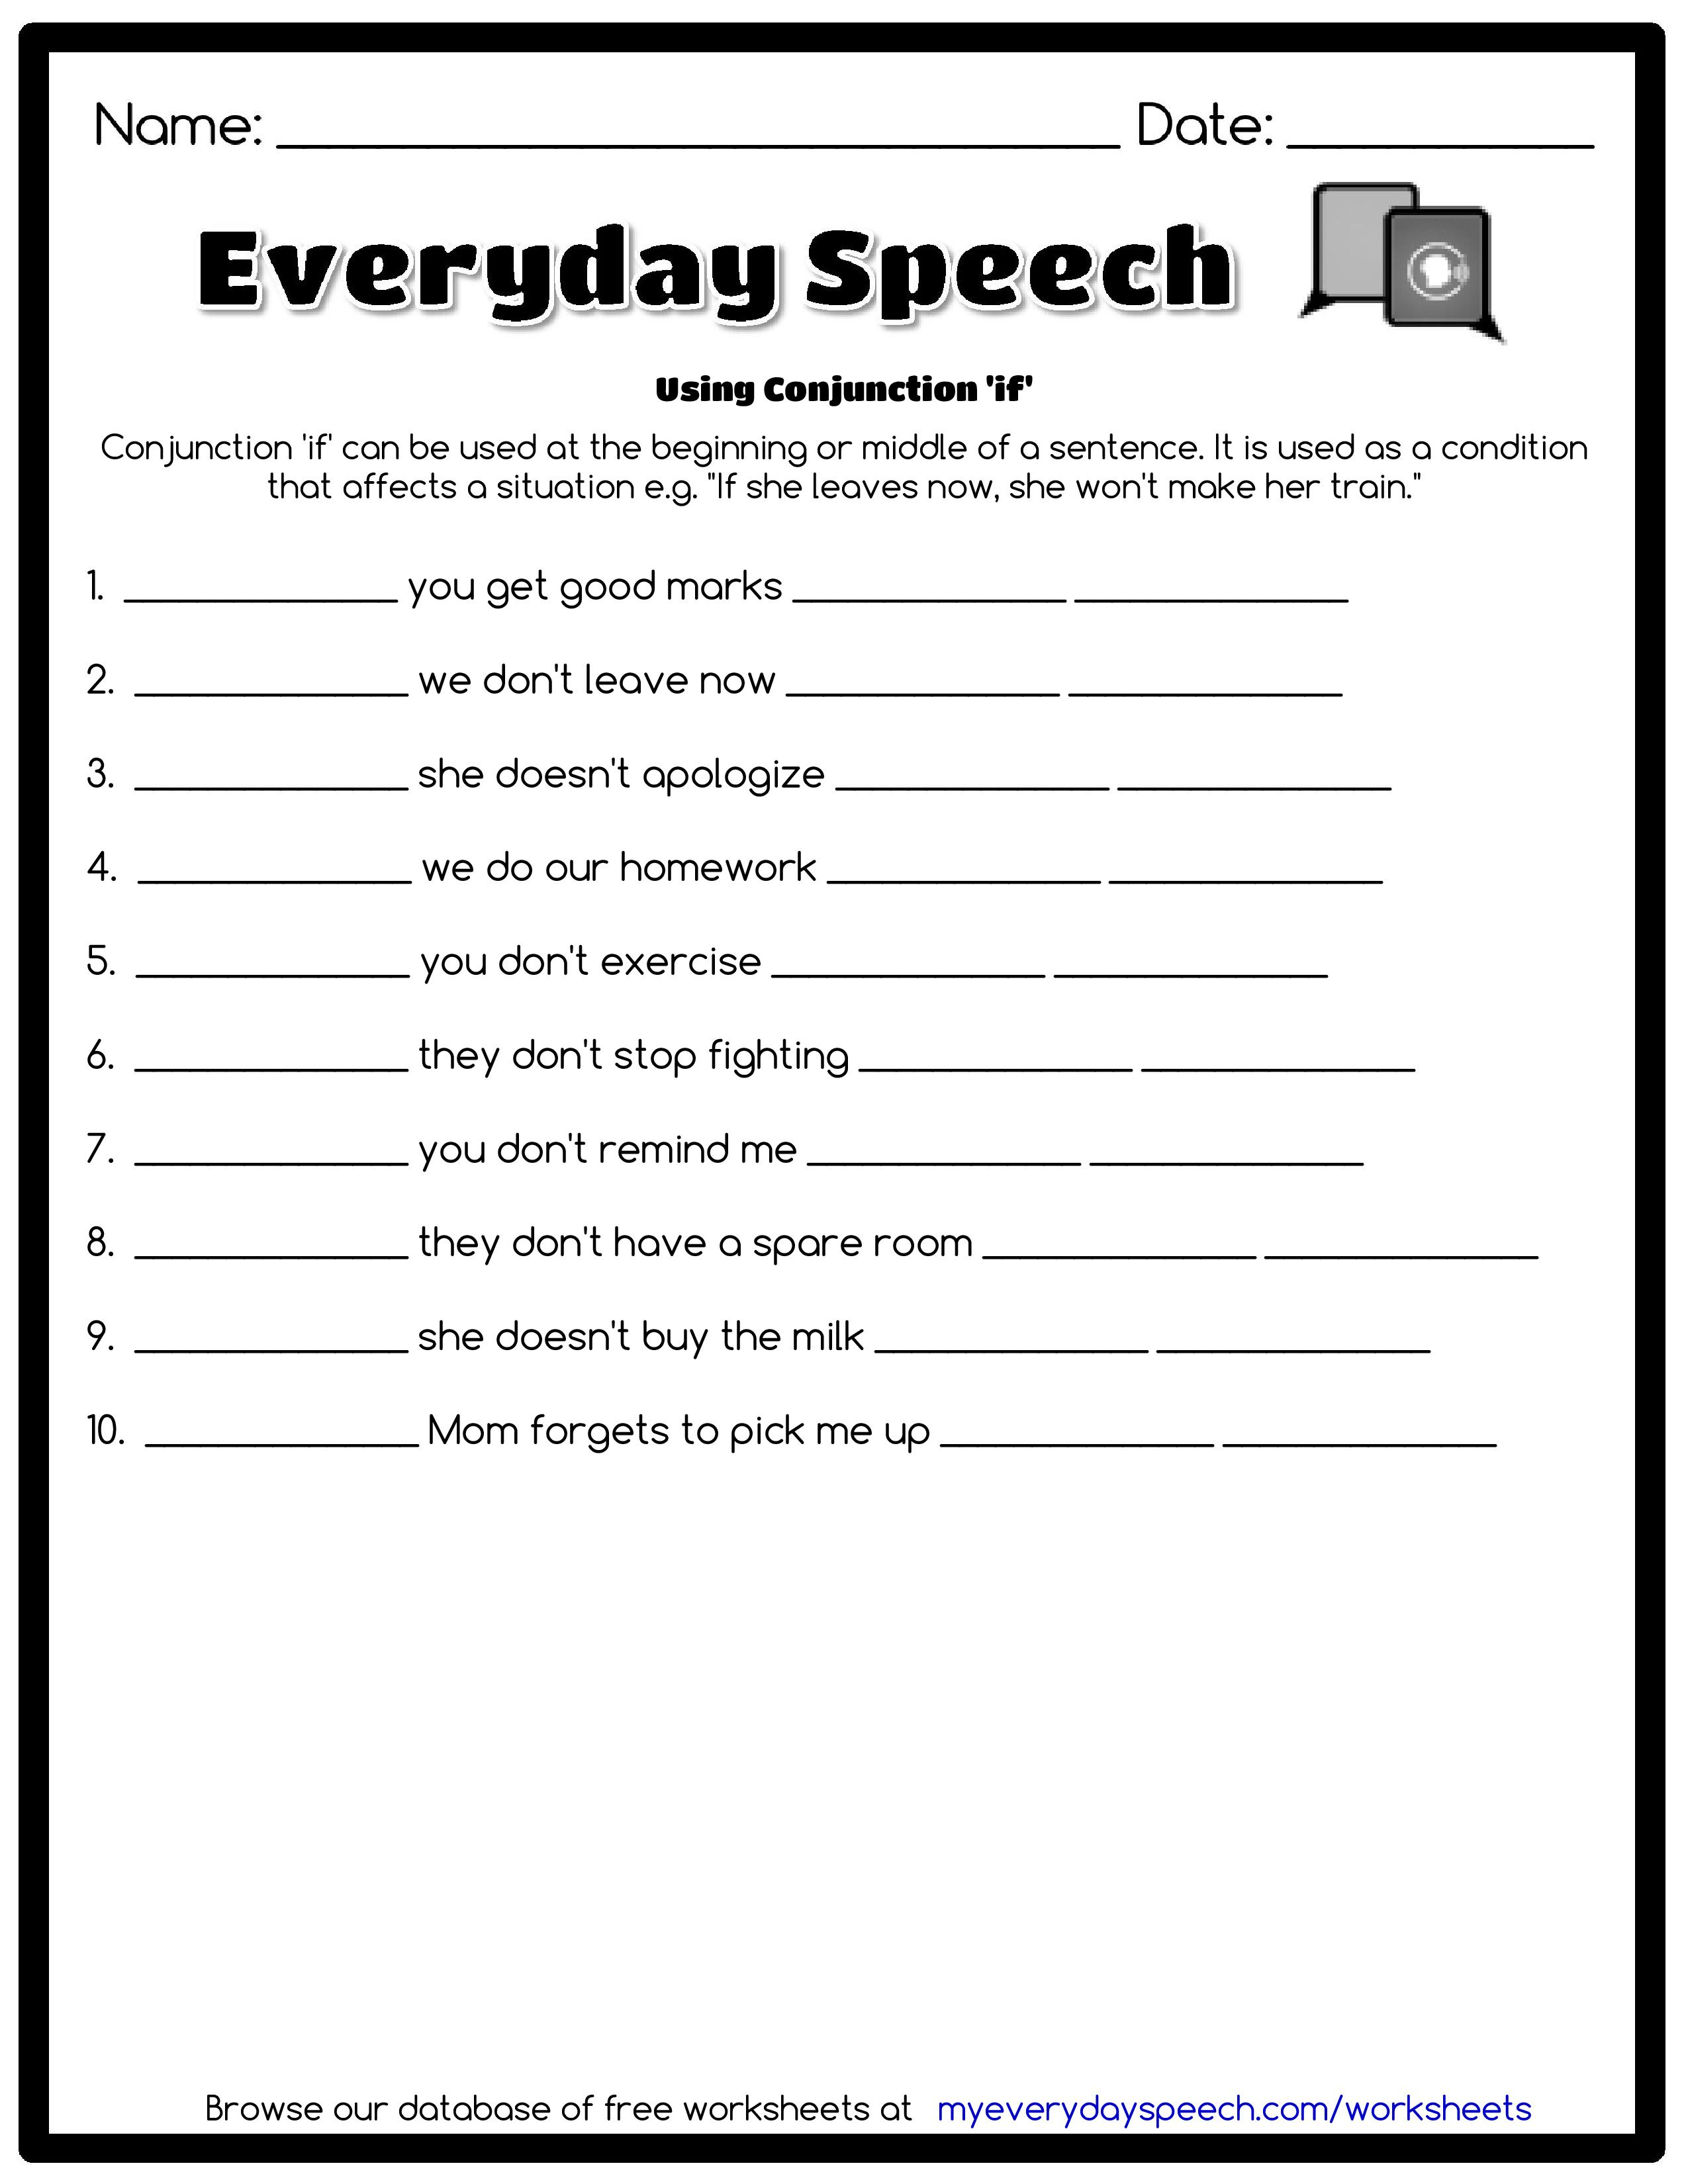 Check Out The Worksheet I Just Made Using Everyday Speech S Worksheet Creator Using Conjunction If Conjuncti Speech Therapy Worksheets Speech Conjunctions [ 3300 x 2550 Pixel ]